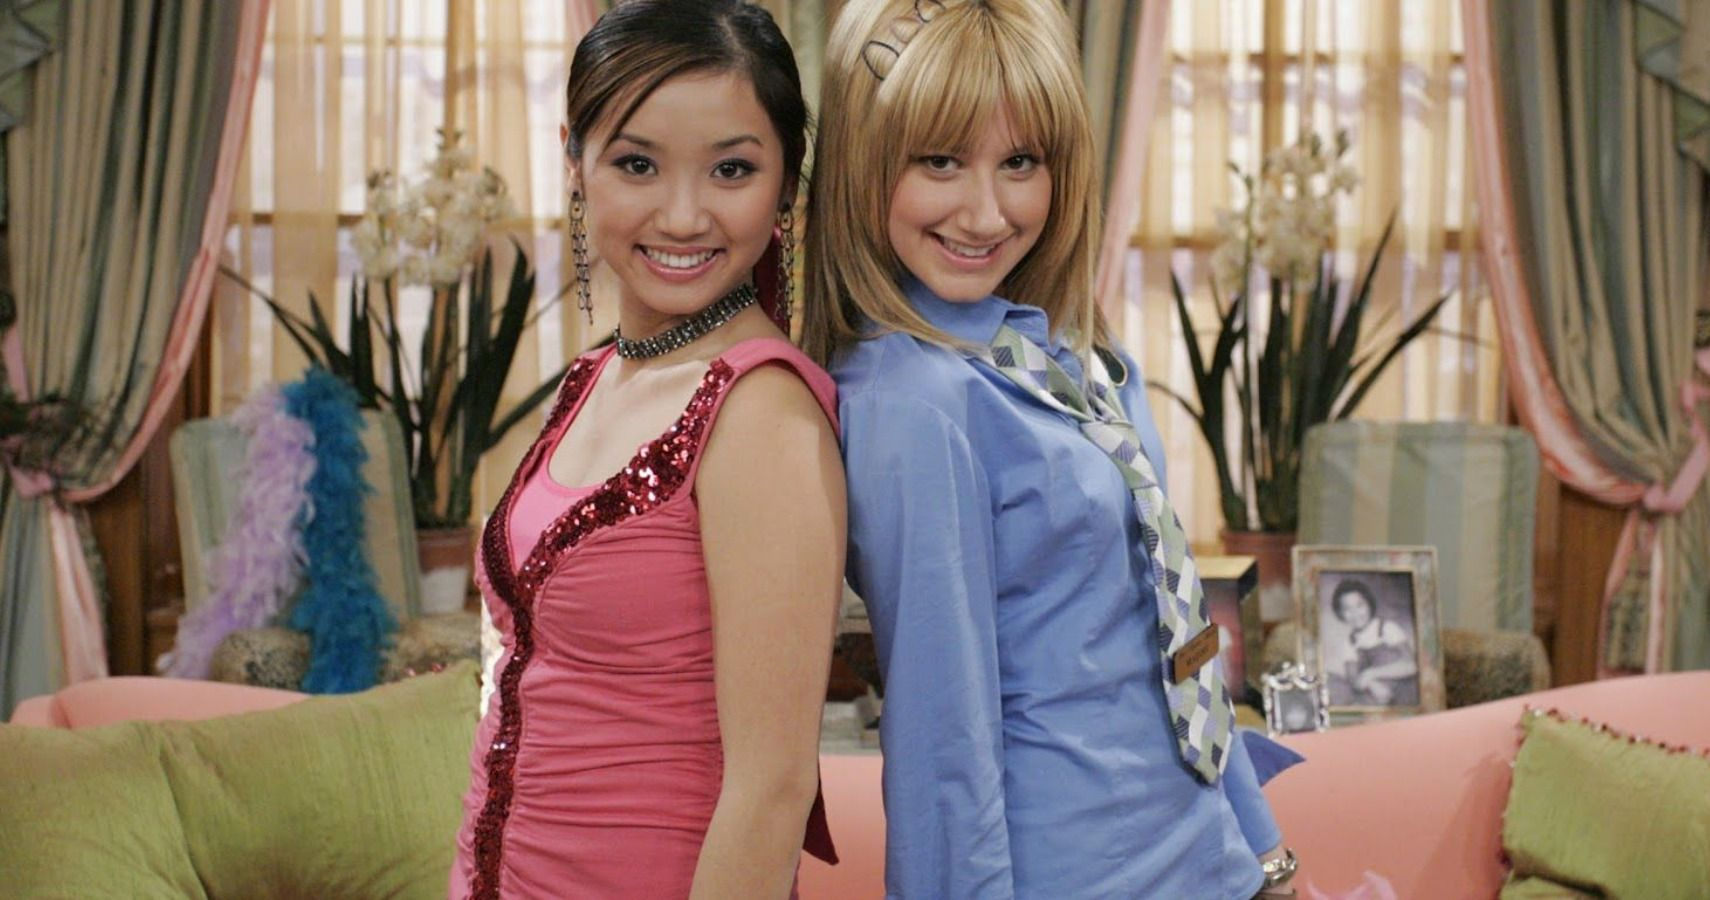 In The Suite Life of Zack and Cody, when London was told that she is not that thin therfore she should starving herself and Maddie was told she is so thin.